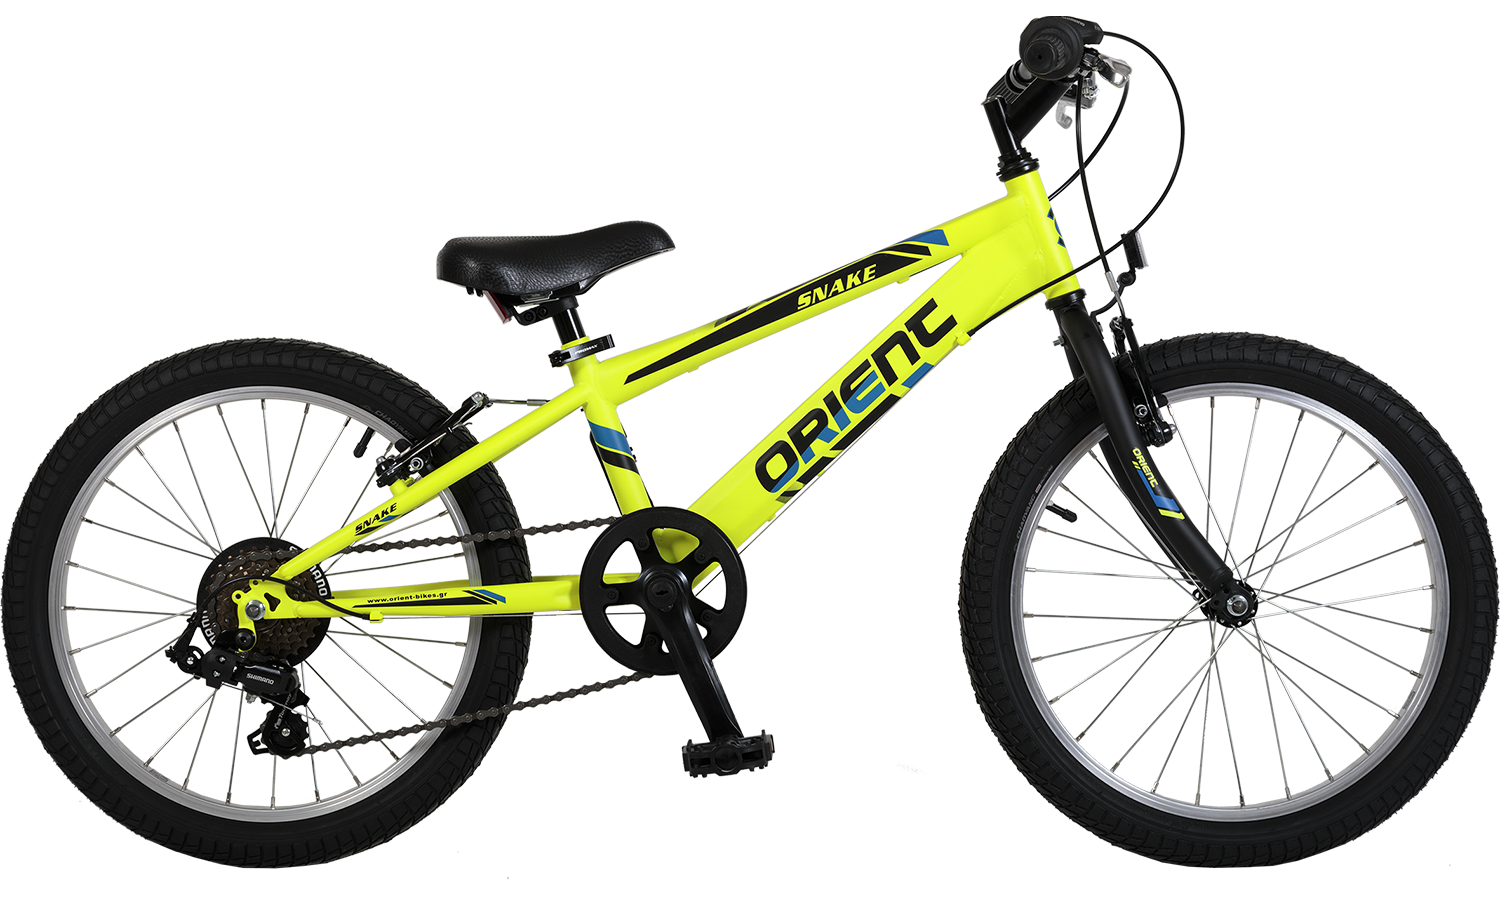 SNAKE 20″ 6sp. bike image